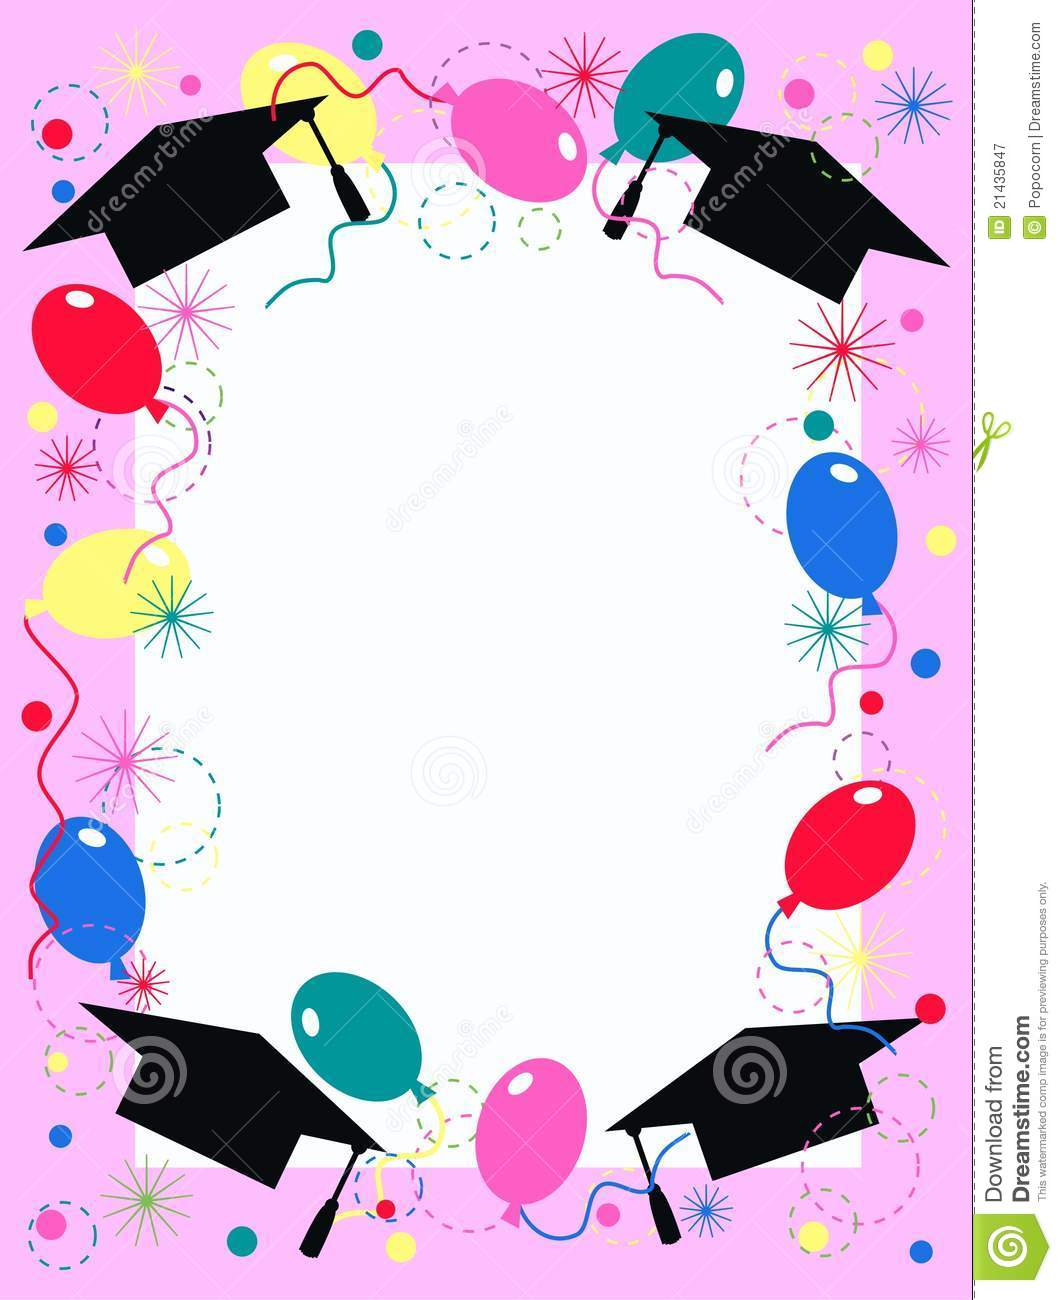 Graduation Party Invitations Borders